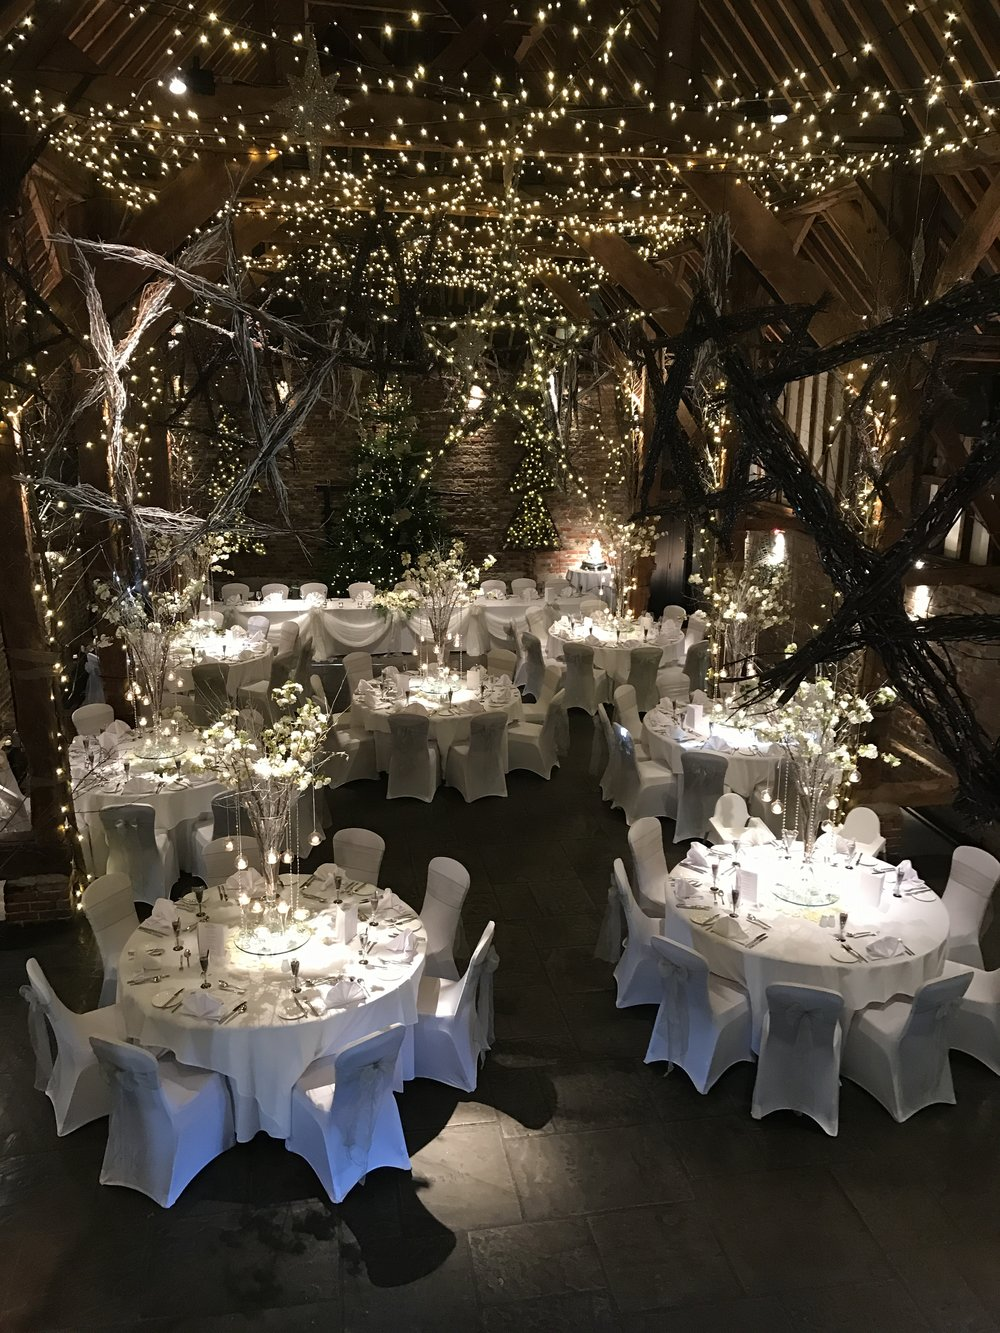 A truly magical setting, 'An Enchanted Forest' for Christmas Cooling Castle barn 2017.